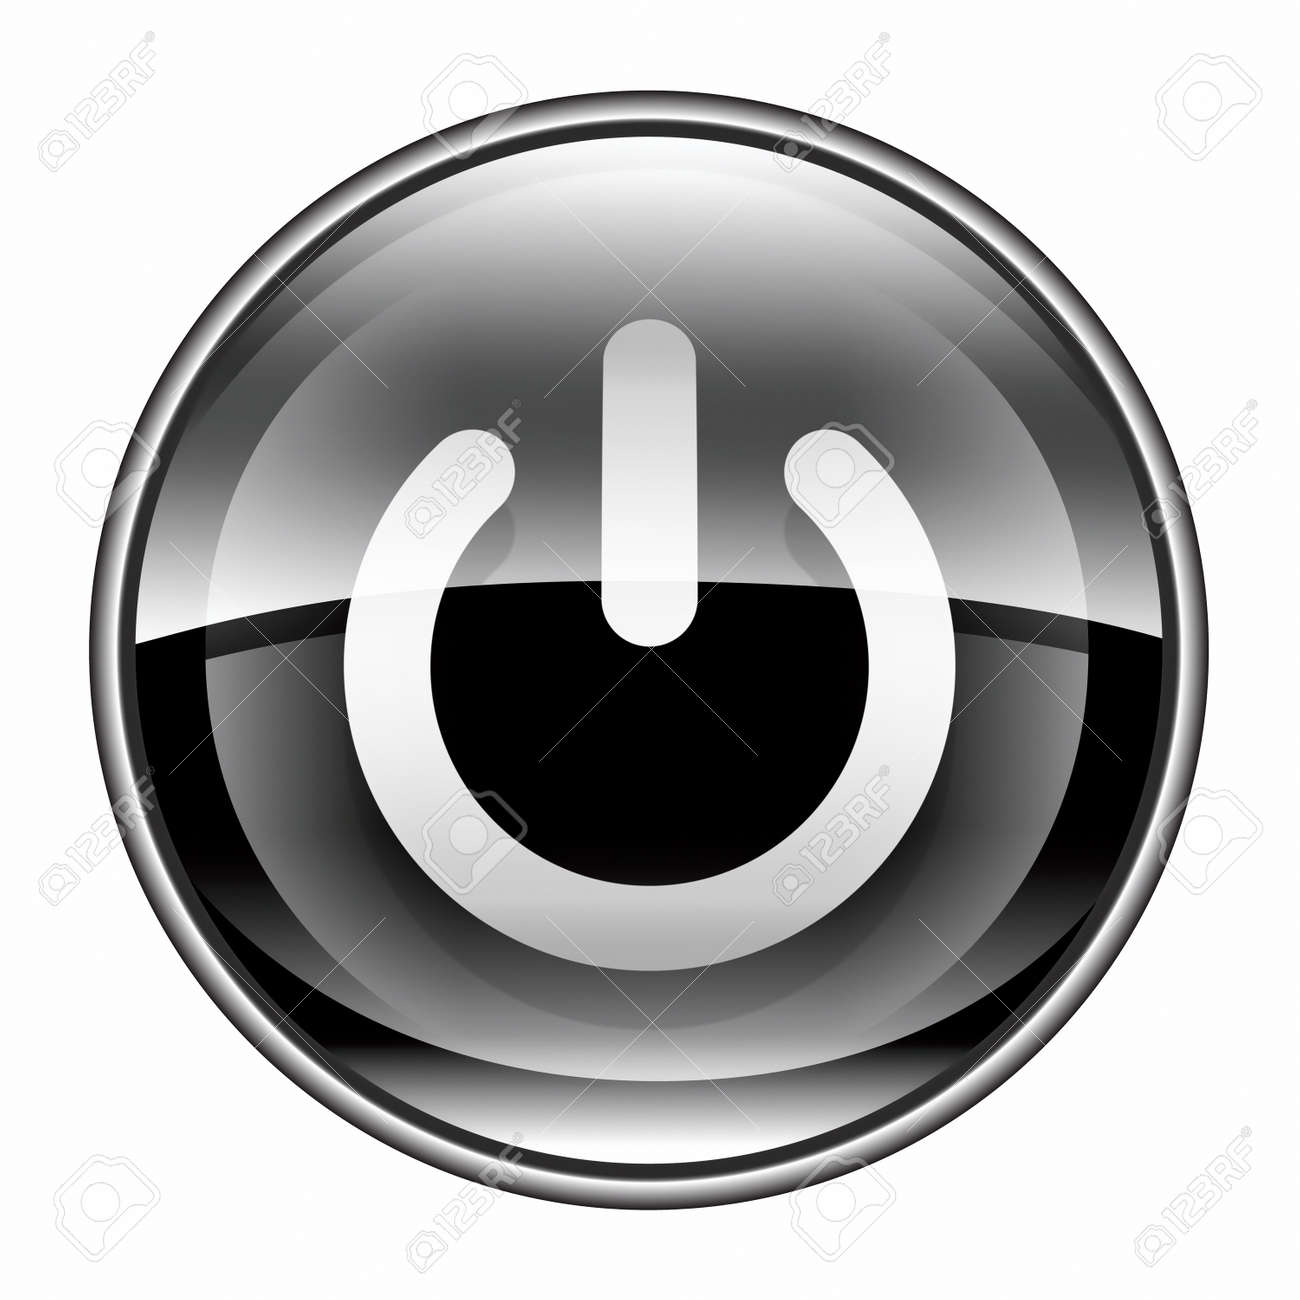 power button black, isolated on white background. Stock Photo - 10020637